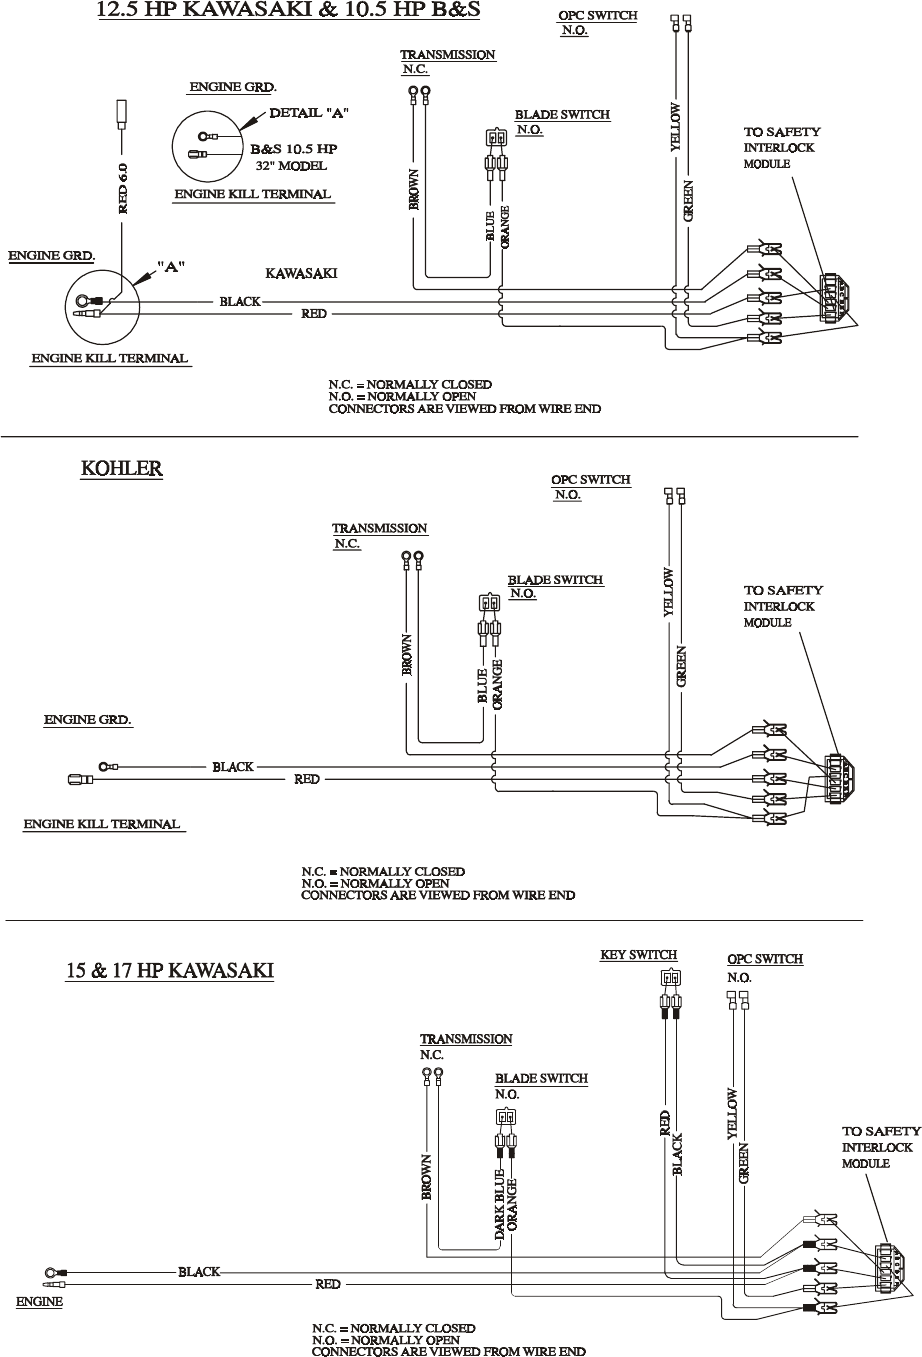 fa869892 6c99 4c24 afcd a612459af1d0 bg27 page 39 of exmark lawn mower metro user guide manualsonline com exmark wiring diagram at edmiracle.co